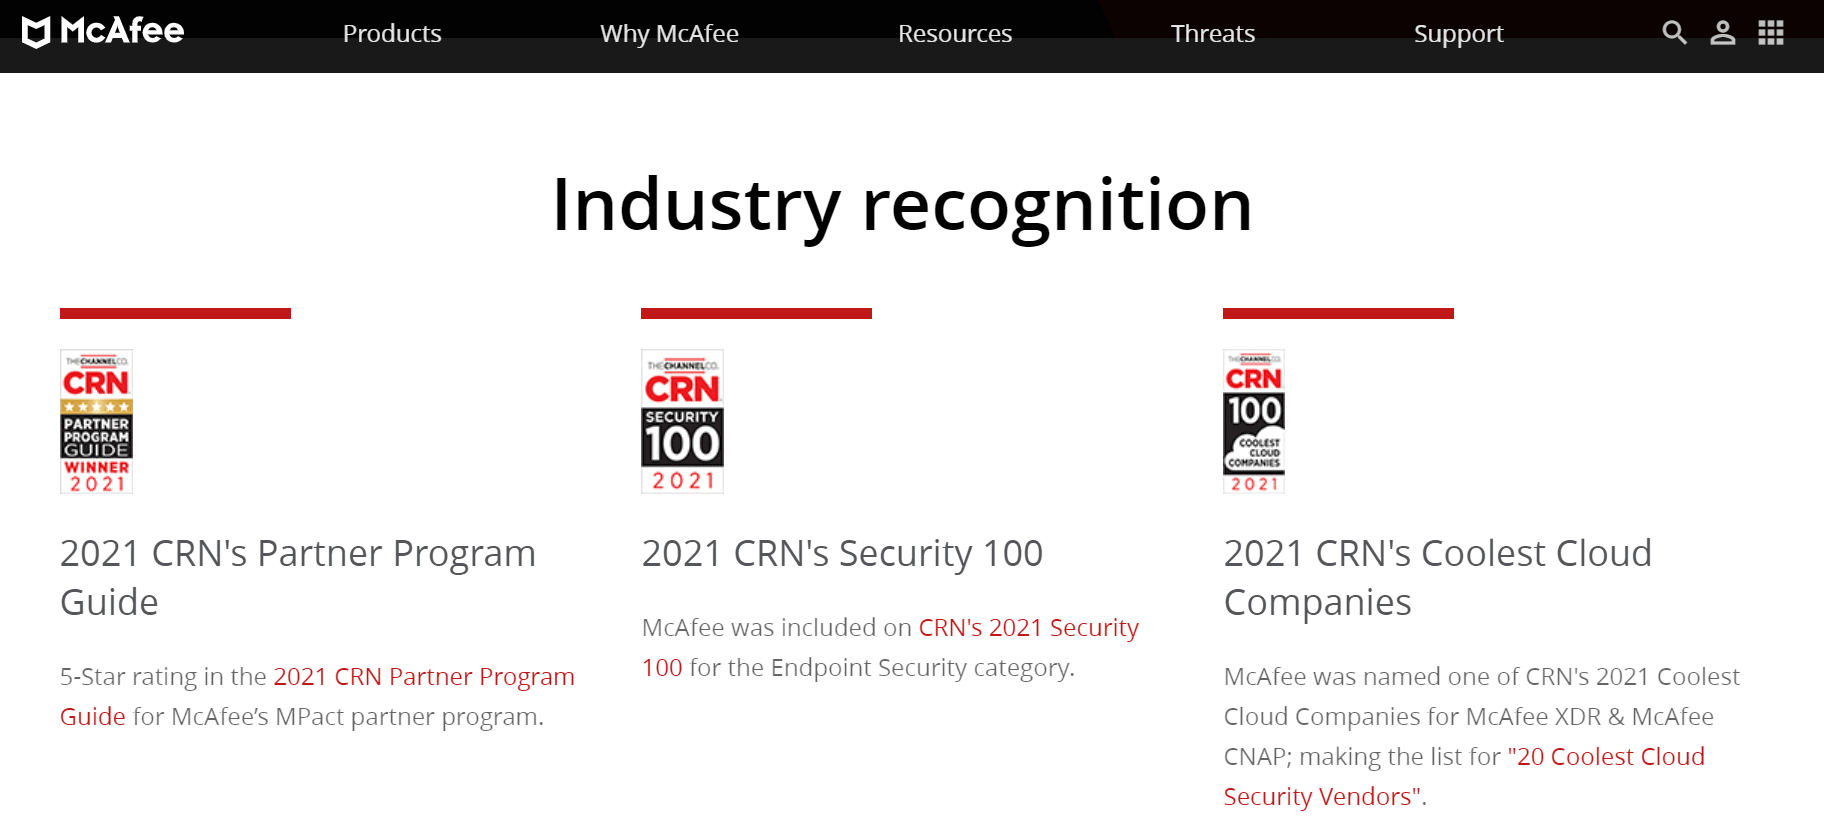 mcafee coupon codes- industry recognition